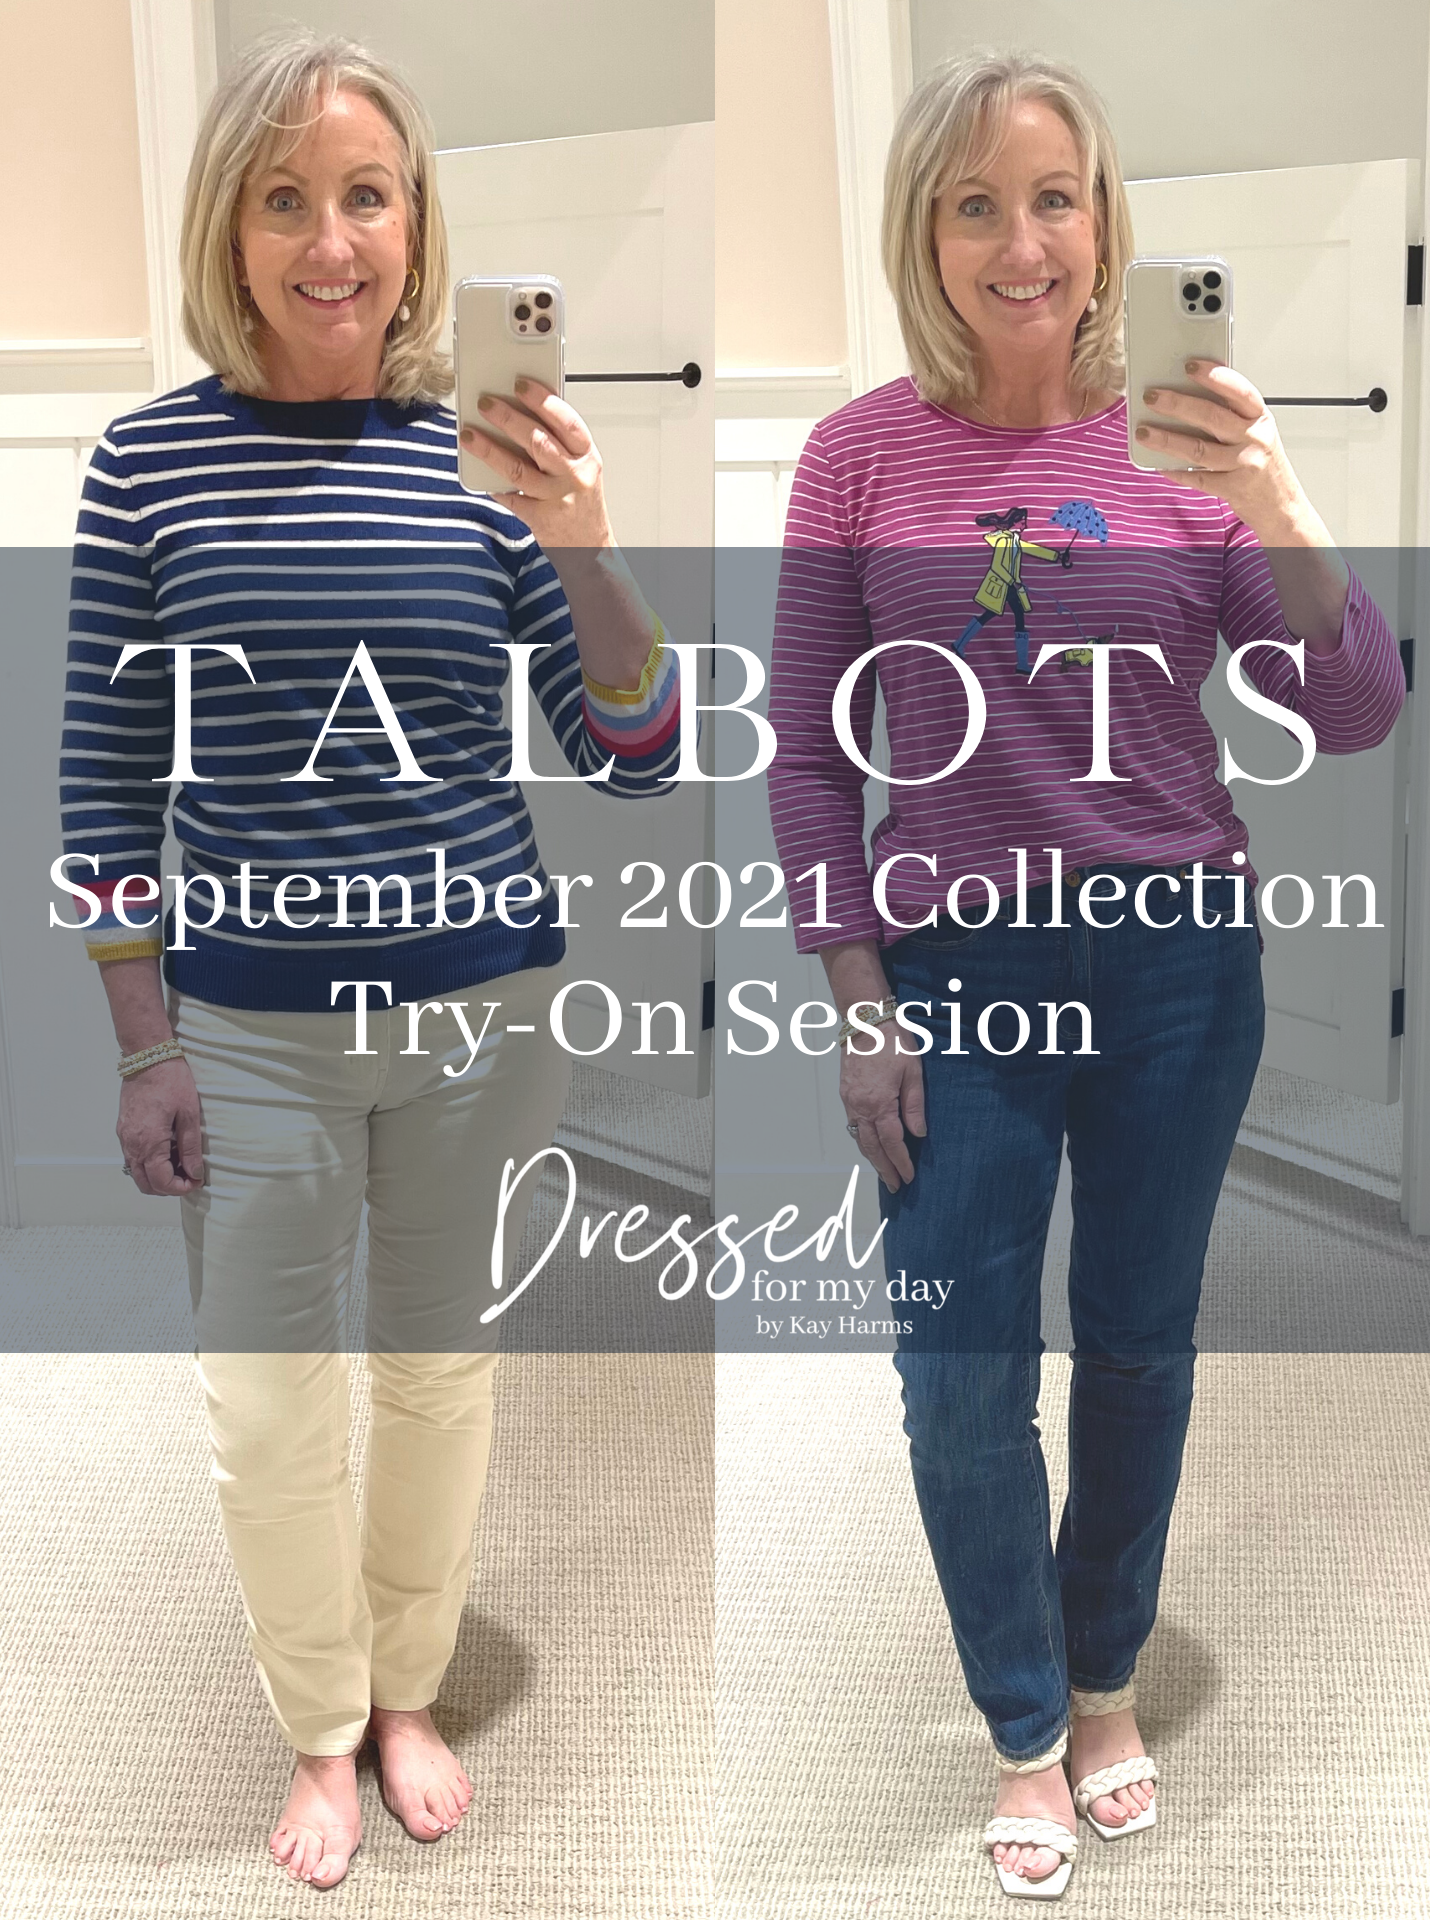 Talbots September 2021 Collection Try-On Session